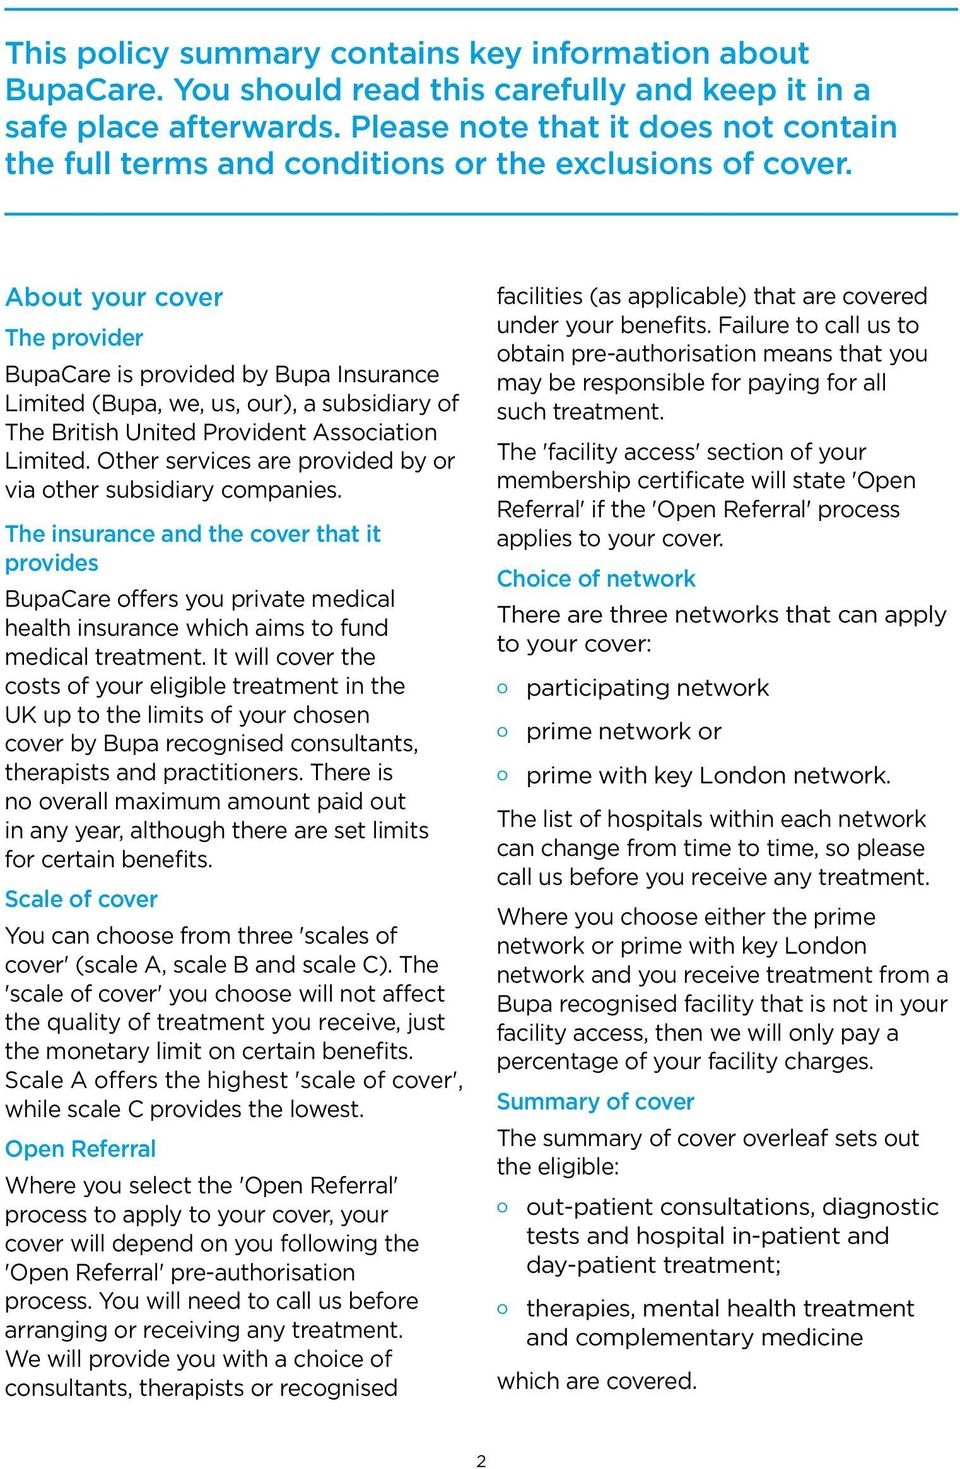 About your cover The provider BupaCare is provided by Bupa Insurance Limited (Bupa, we, us, our), a subsidiary of The British United Provident Association Limited.